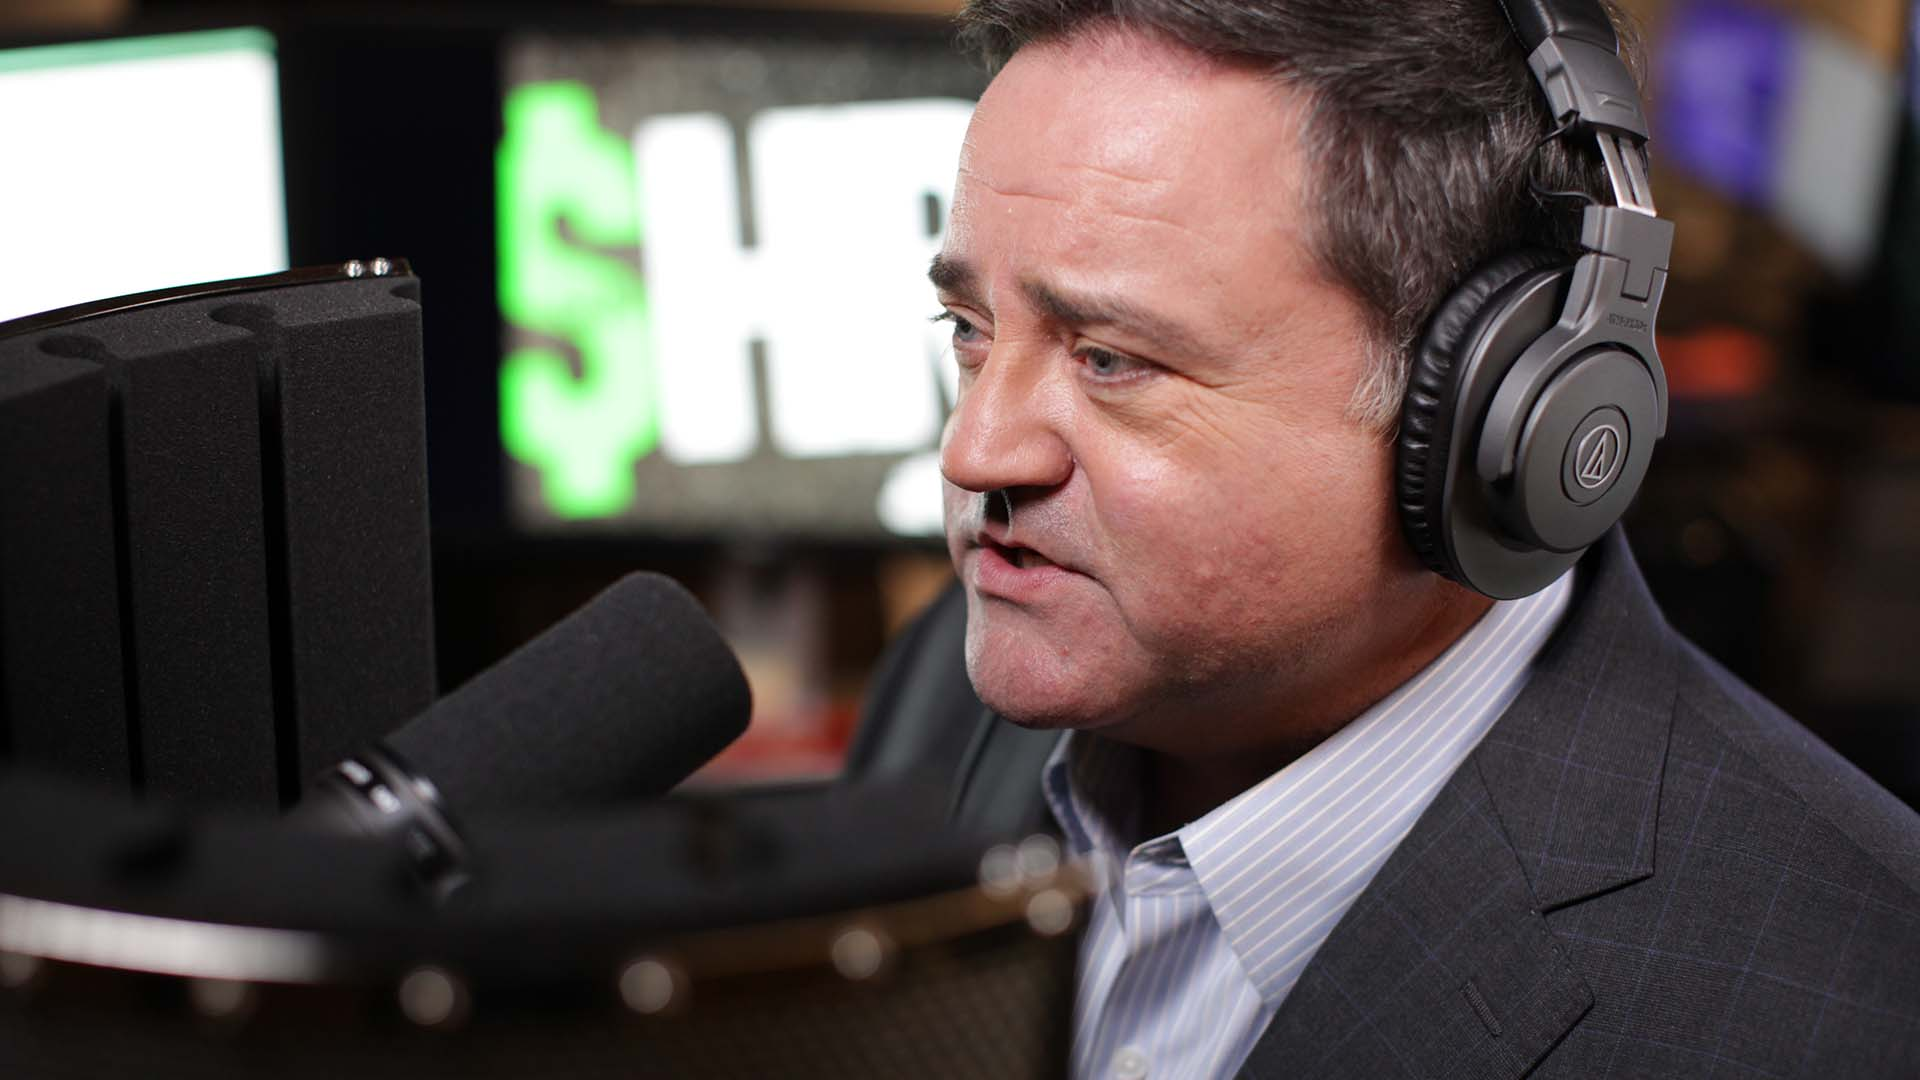 radio host speaking into a microphone